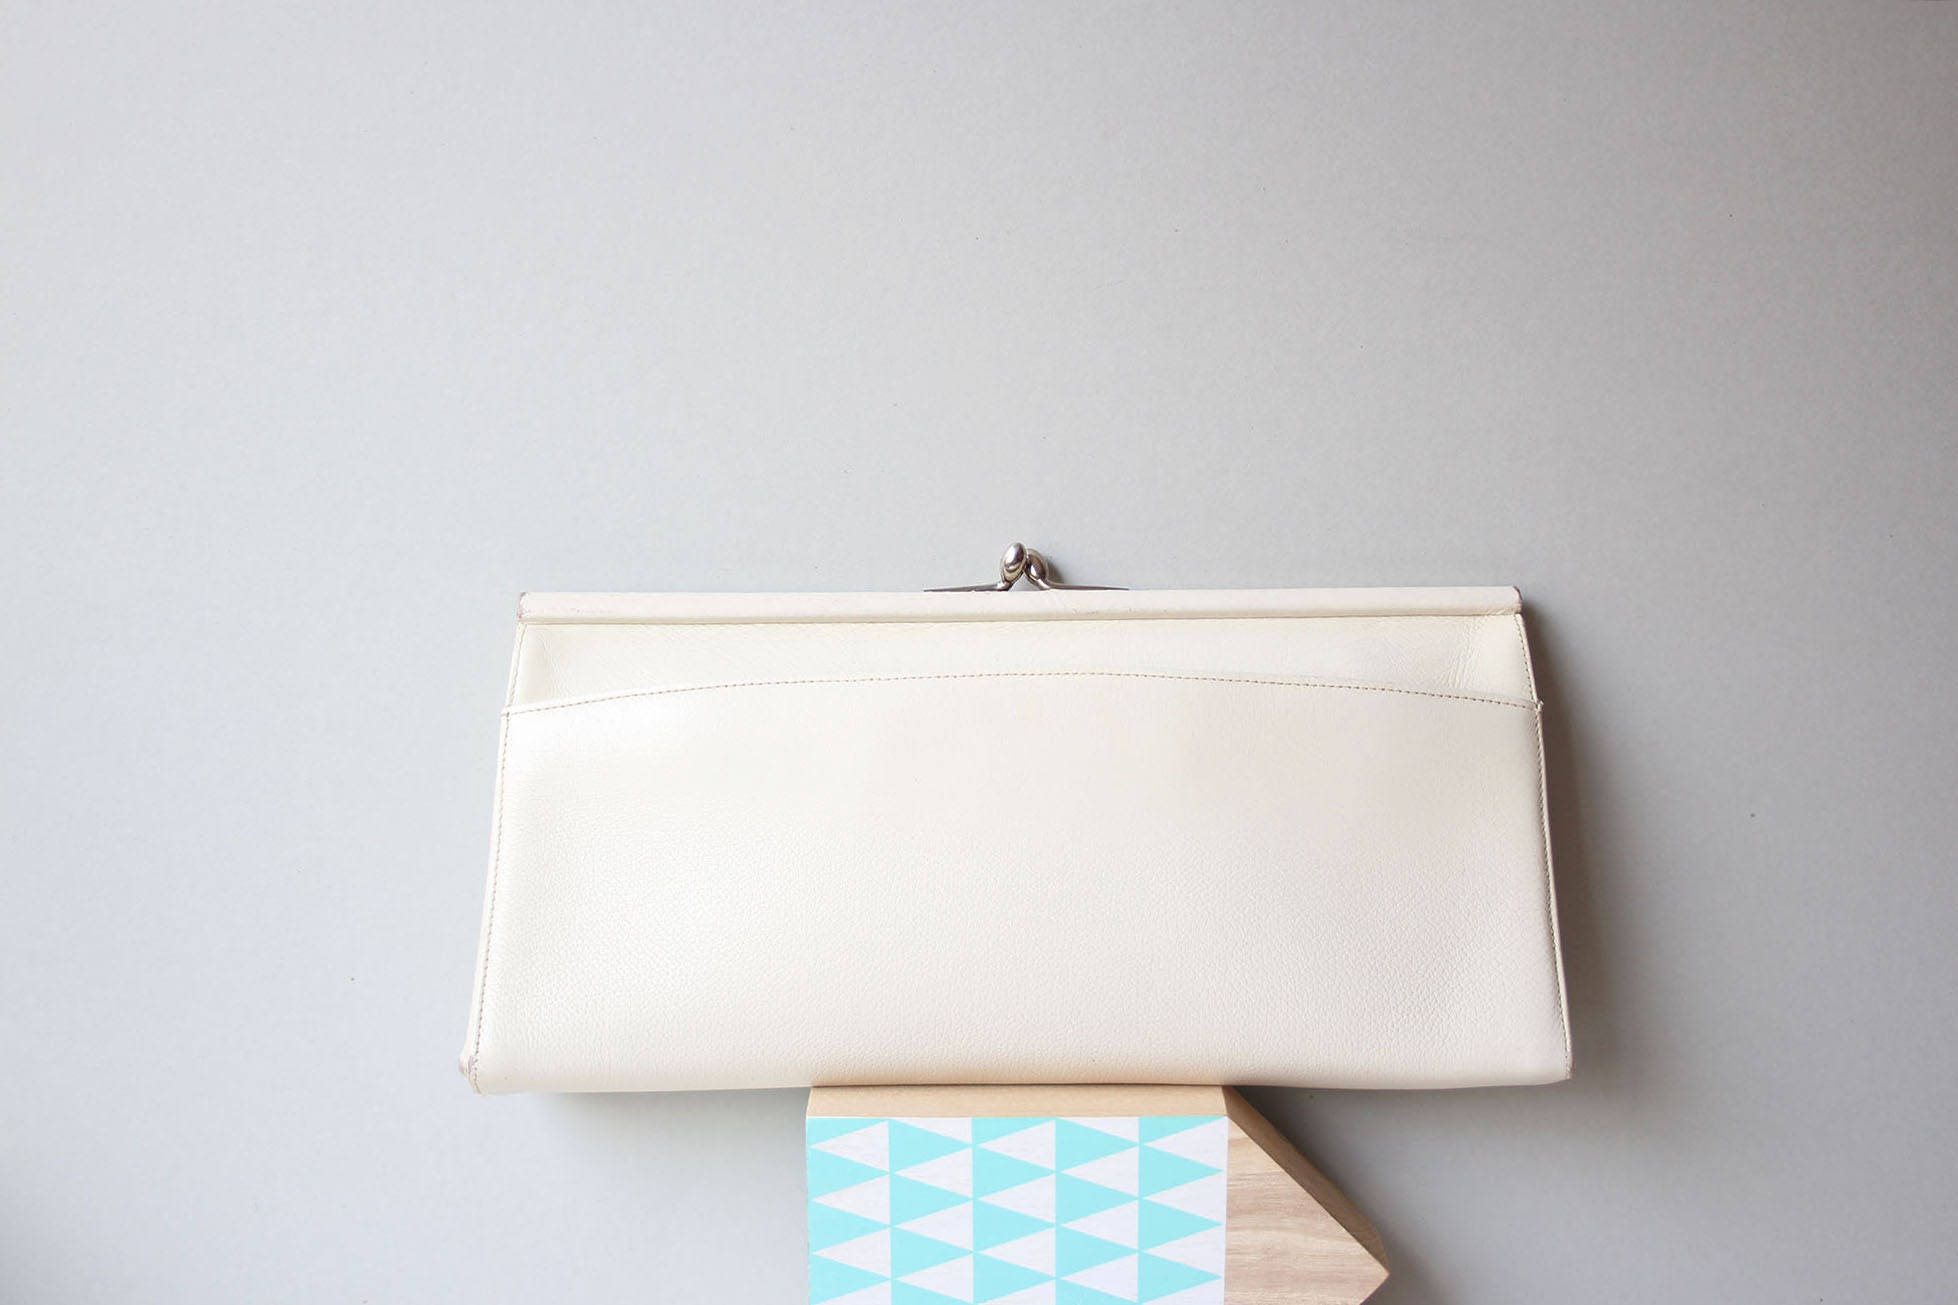 Clutches Evening Bags Elegant Fashion Clutch Cream White Leather Purseframe Clasp Purseclassic Womens Bag